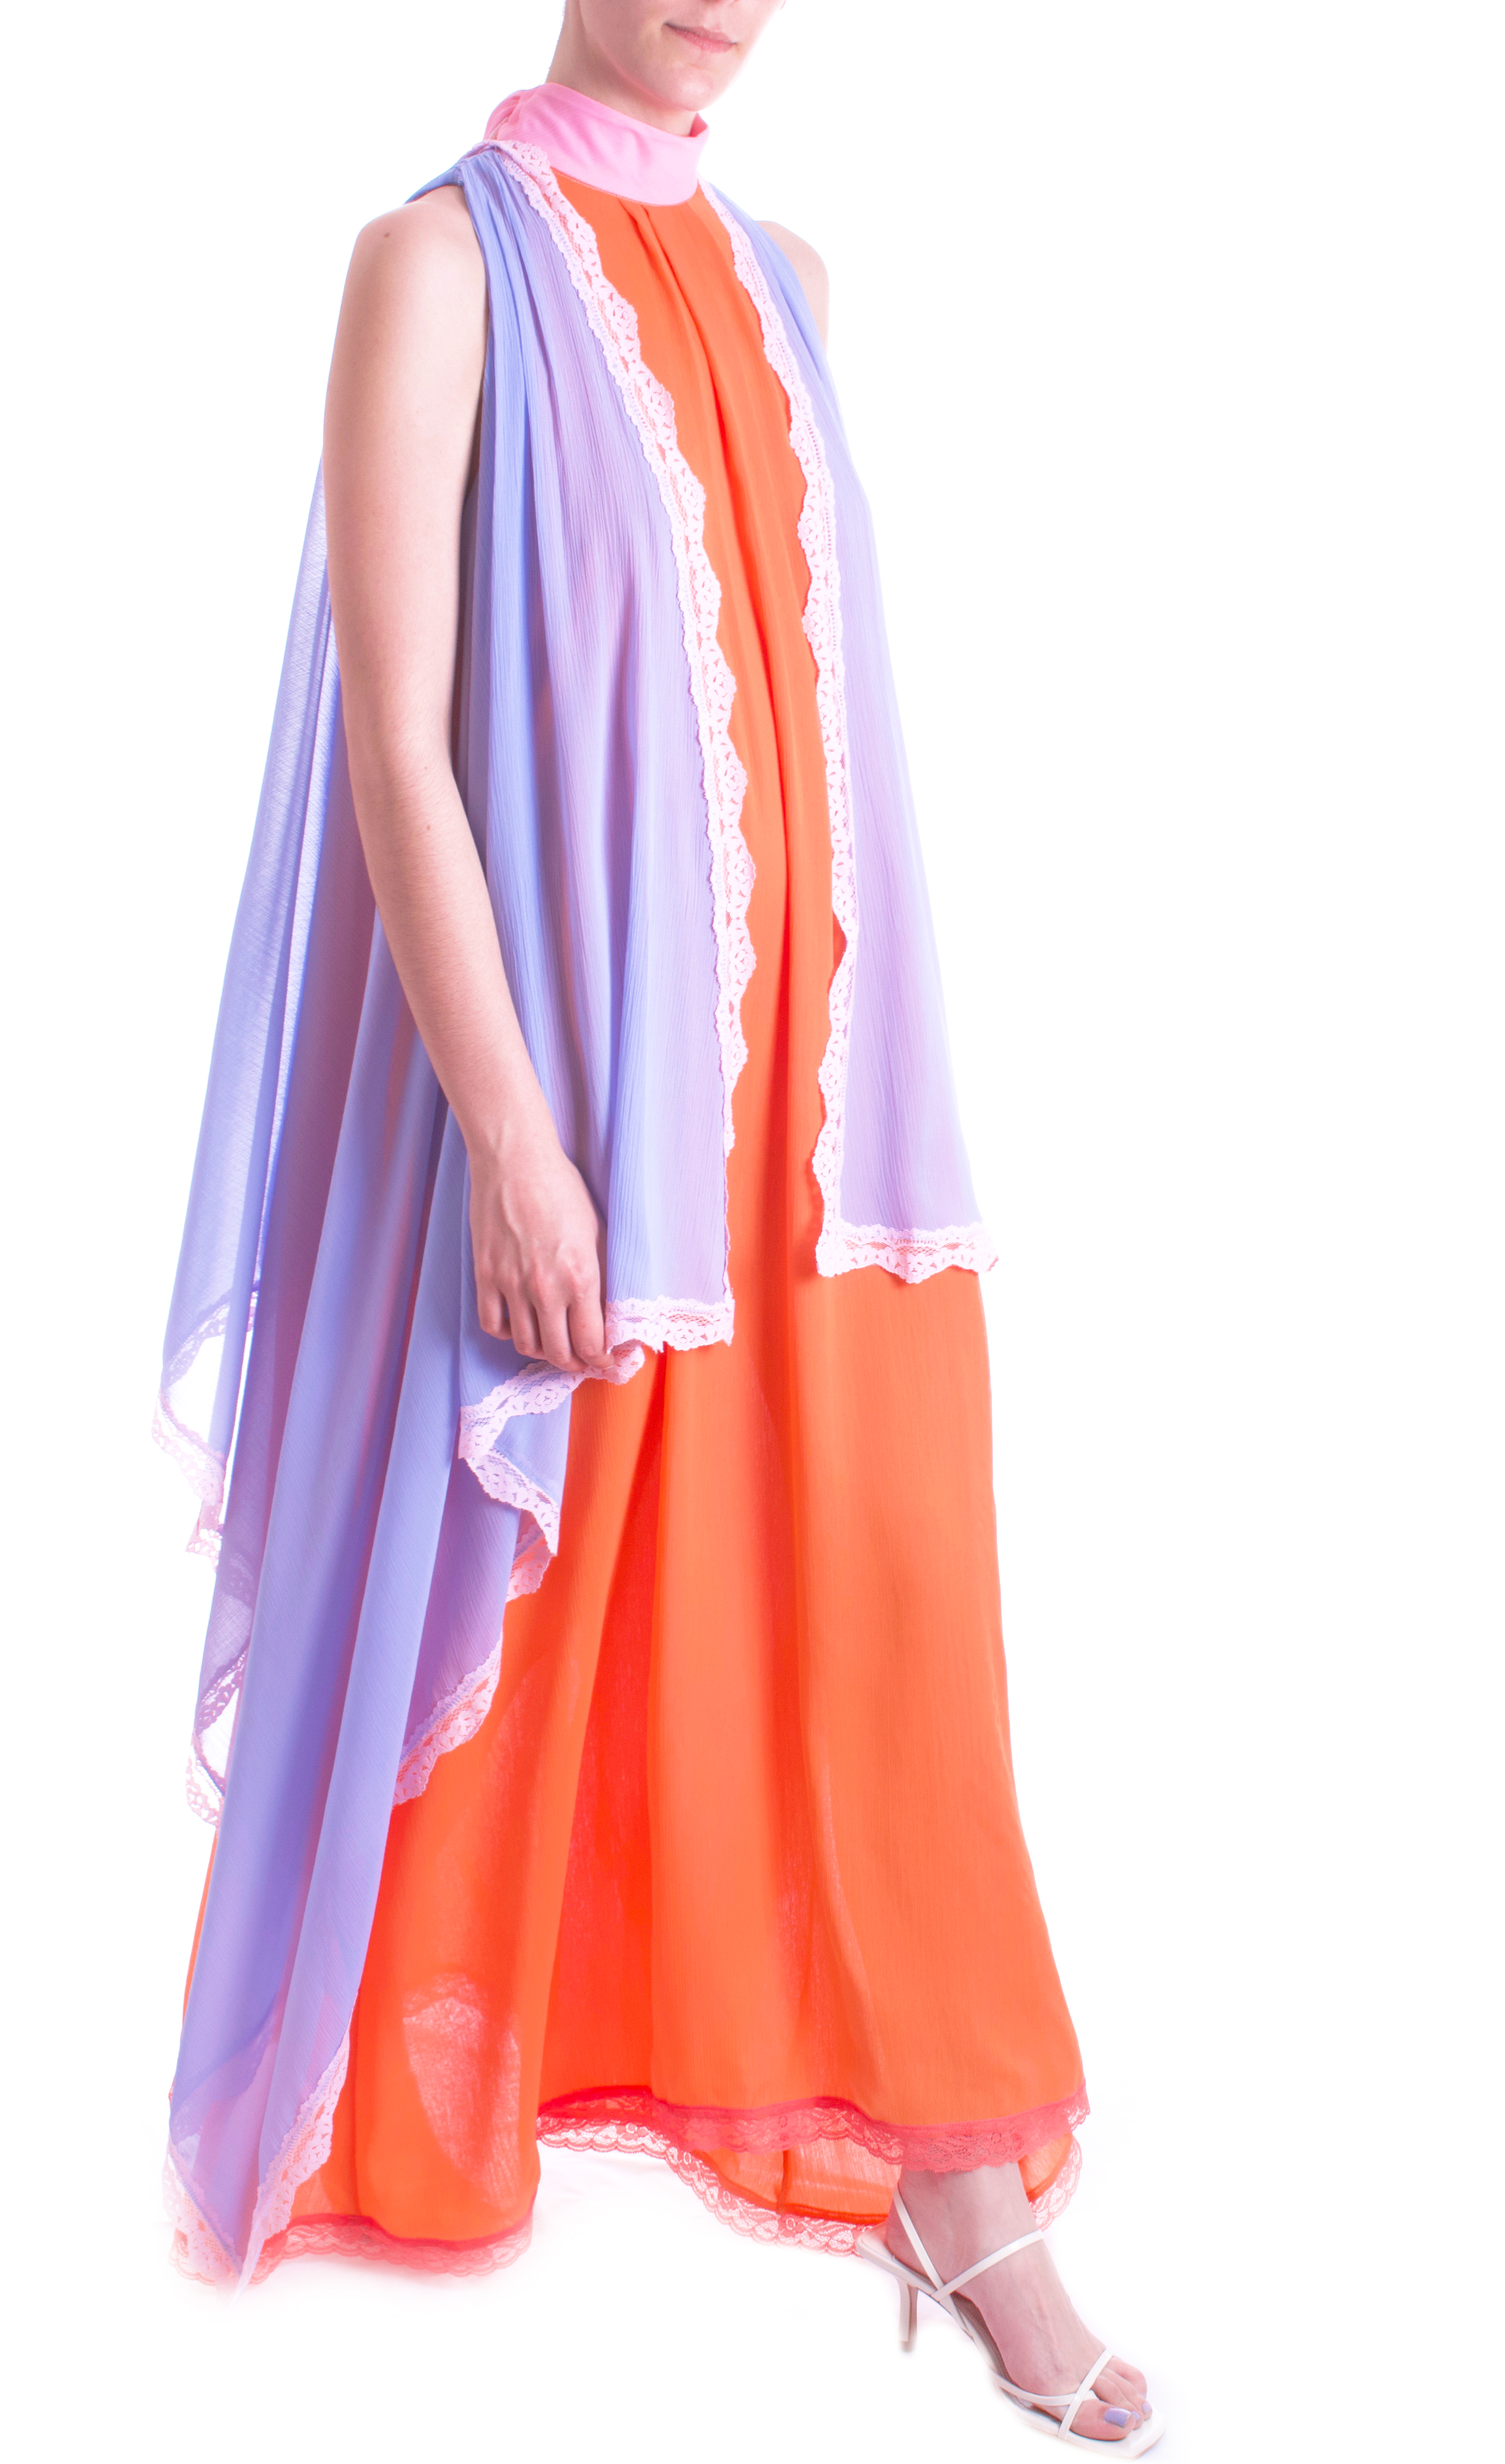 Feria Dress by Berta Cabestany on curated-crowd.com